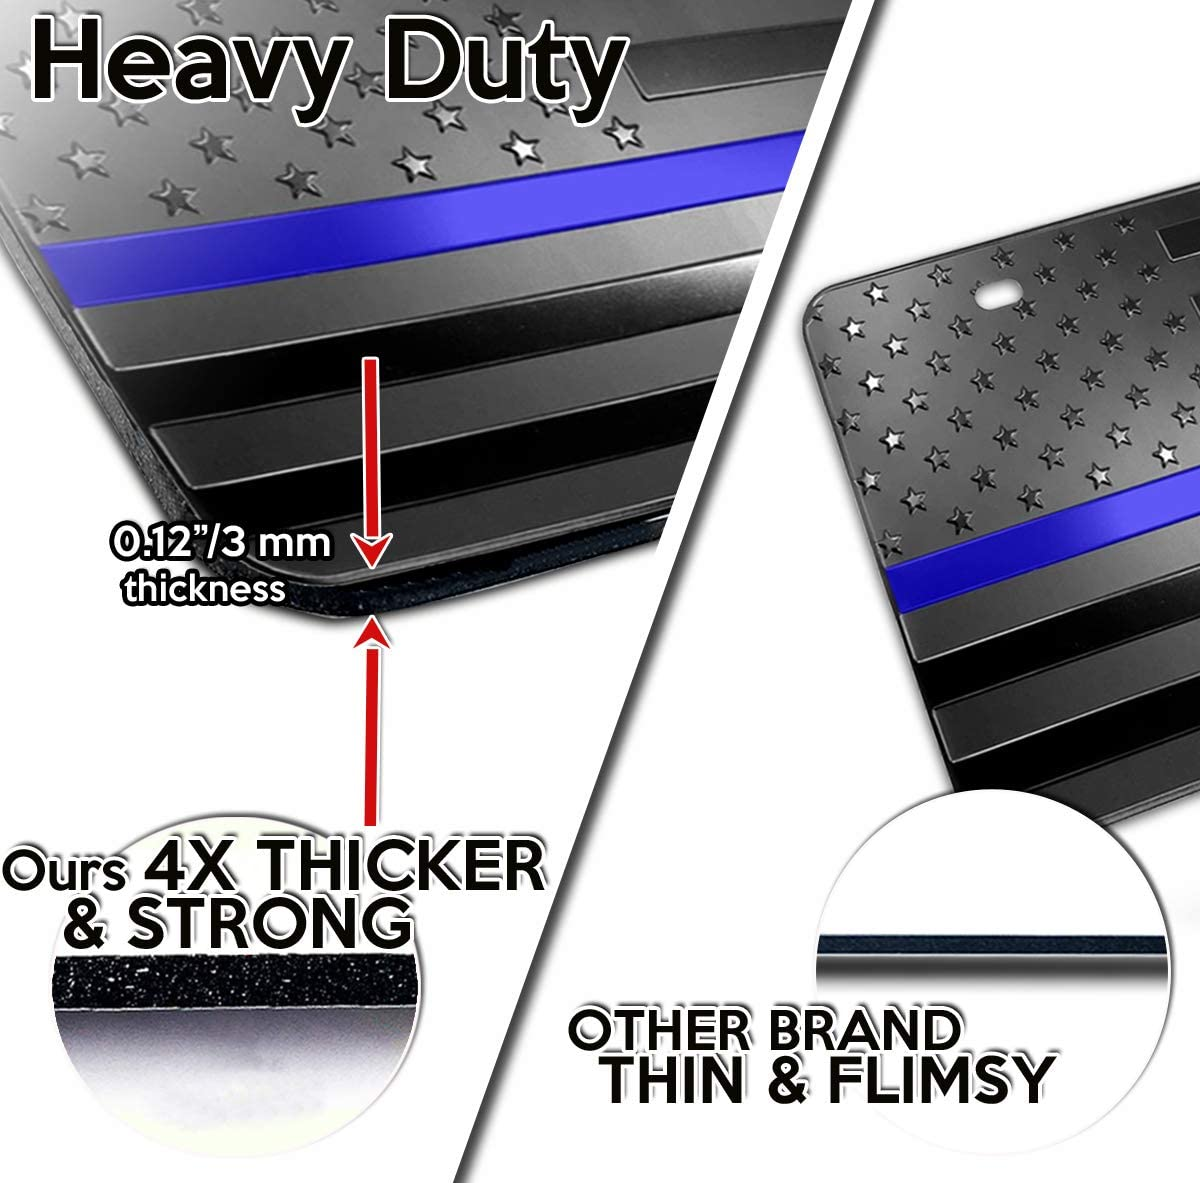 Premium Quality Thick Durable Embossed Monochrome Novelty Great American Pledge of Allegiance Zone Tech Tactical USA Flag License Auto Car Tag Plate with Thin Blue Line